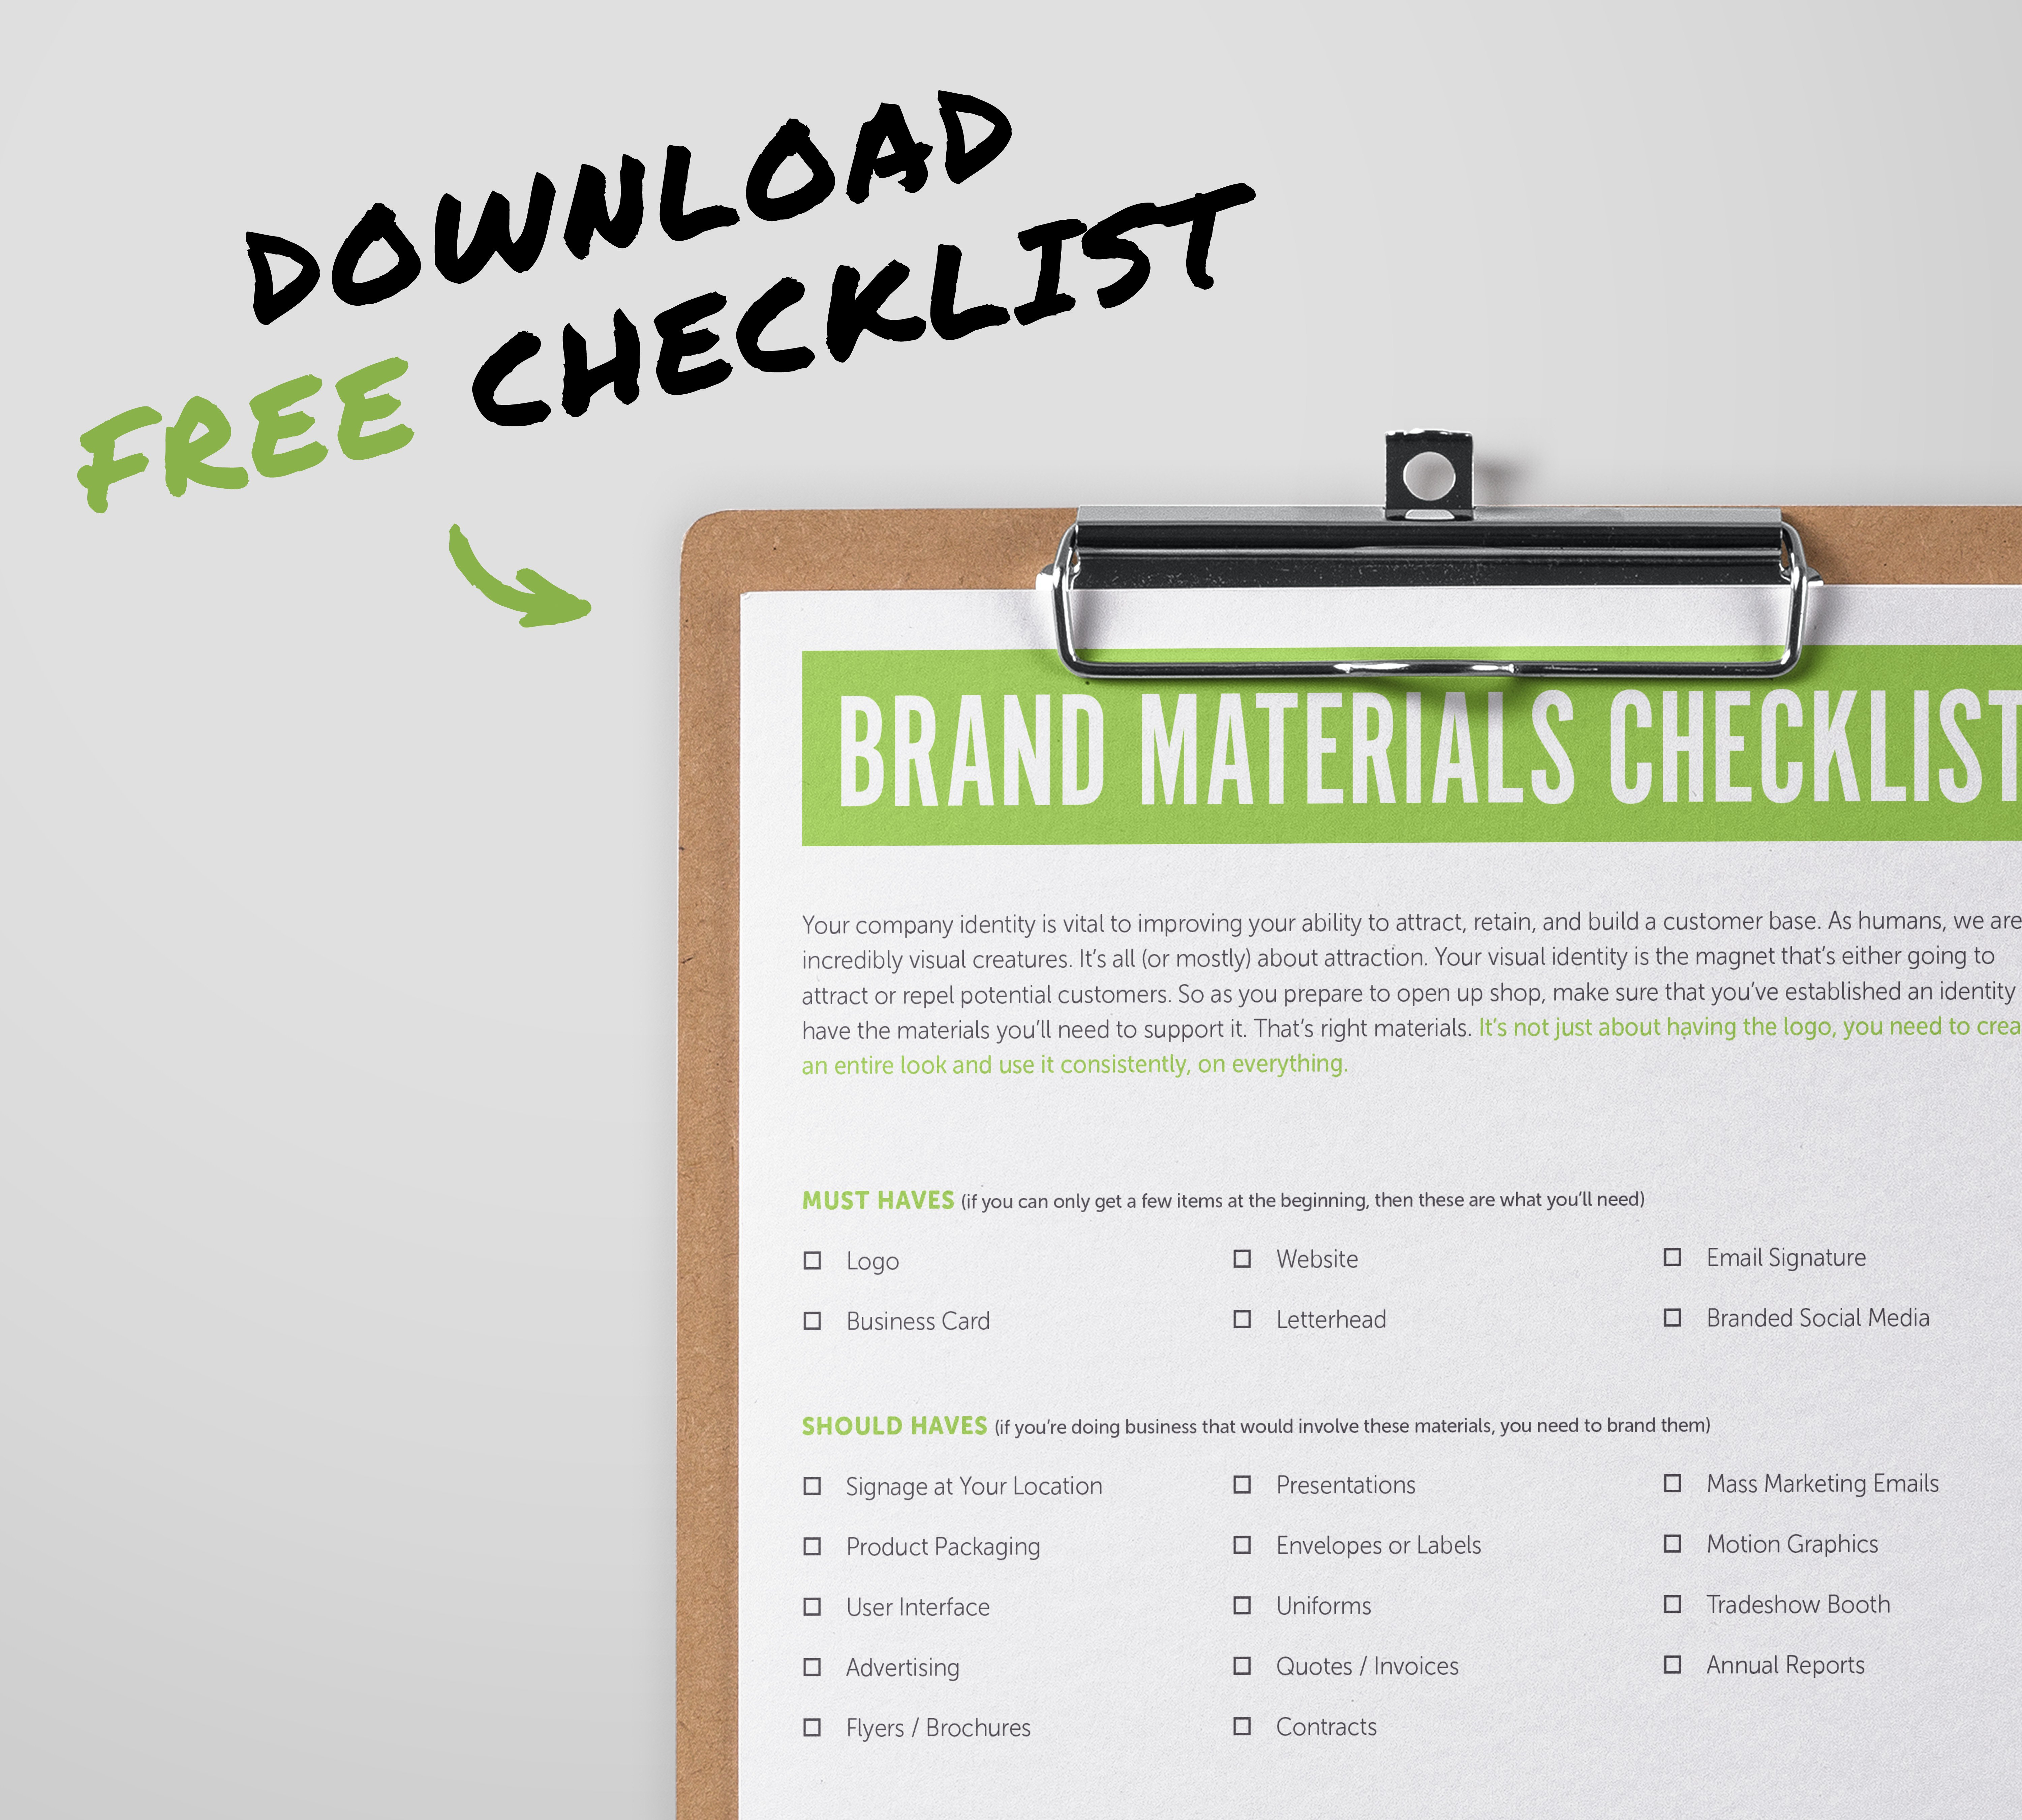 Brand Materials Checklist for New Businesses